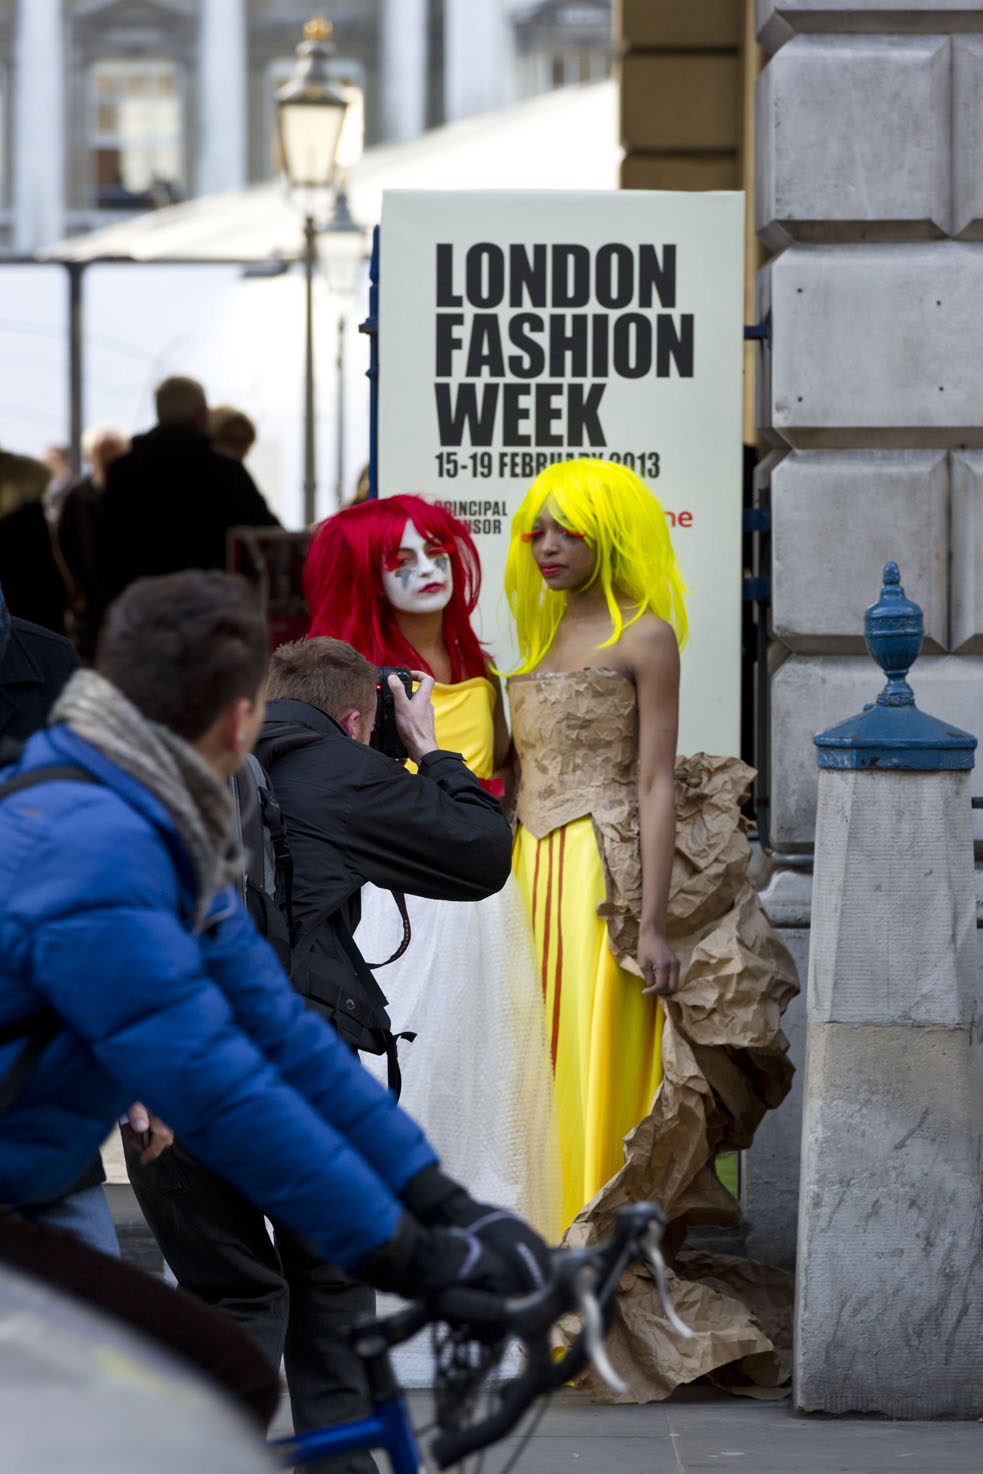 Unions to make workers' rights fashionable at LFW